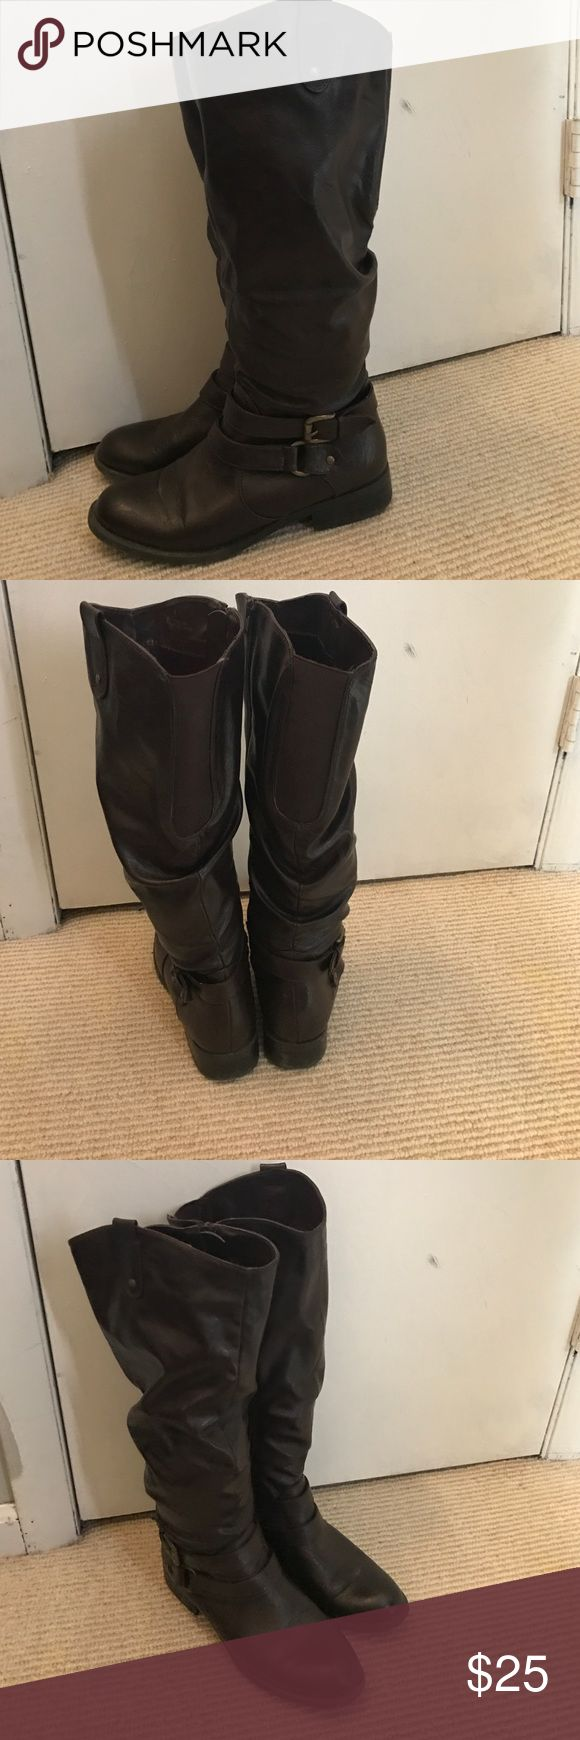 Women's brown zip up riding boots Dark Brown zip up riding boots. White Mountain Brand. Great condition Shoes